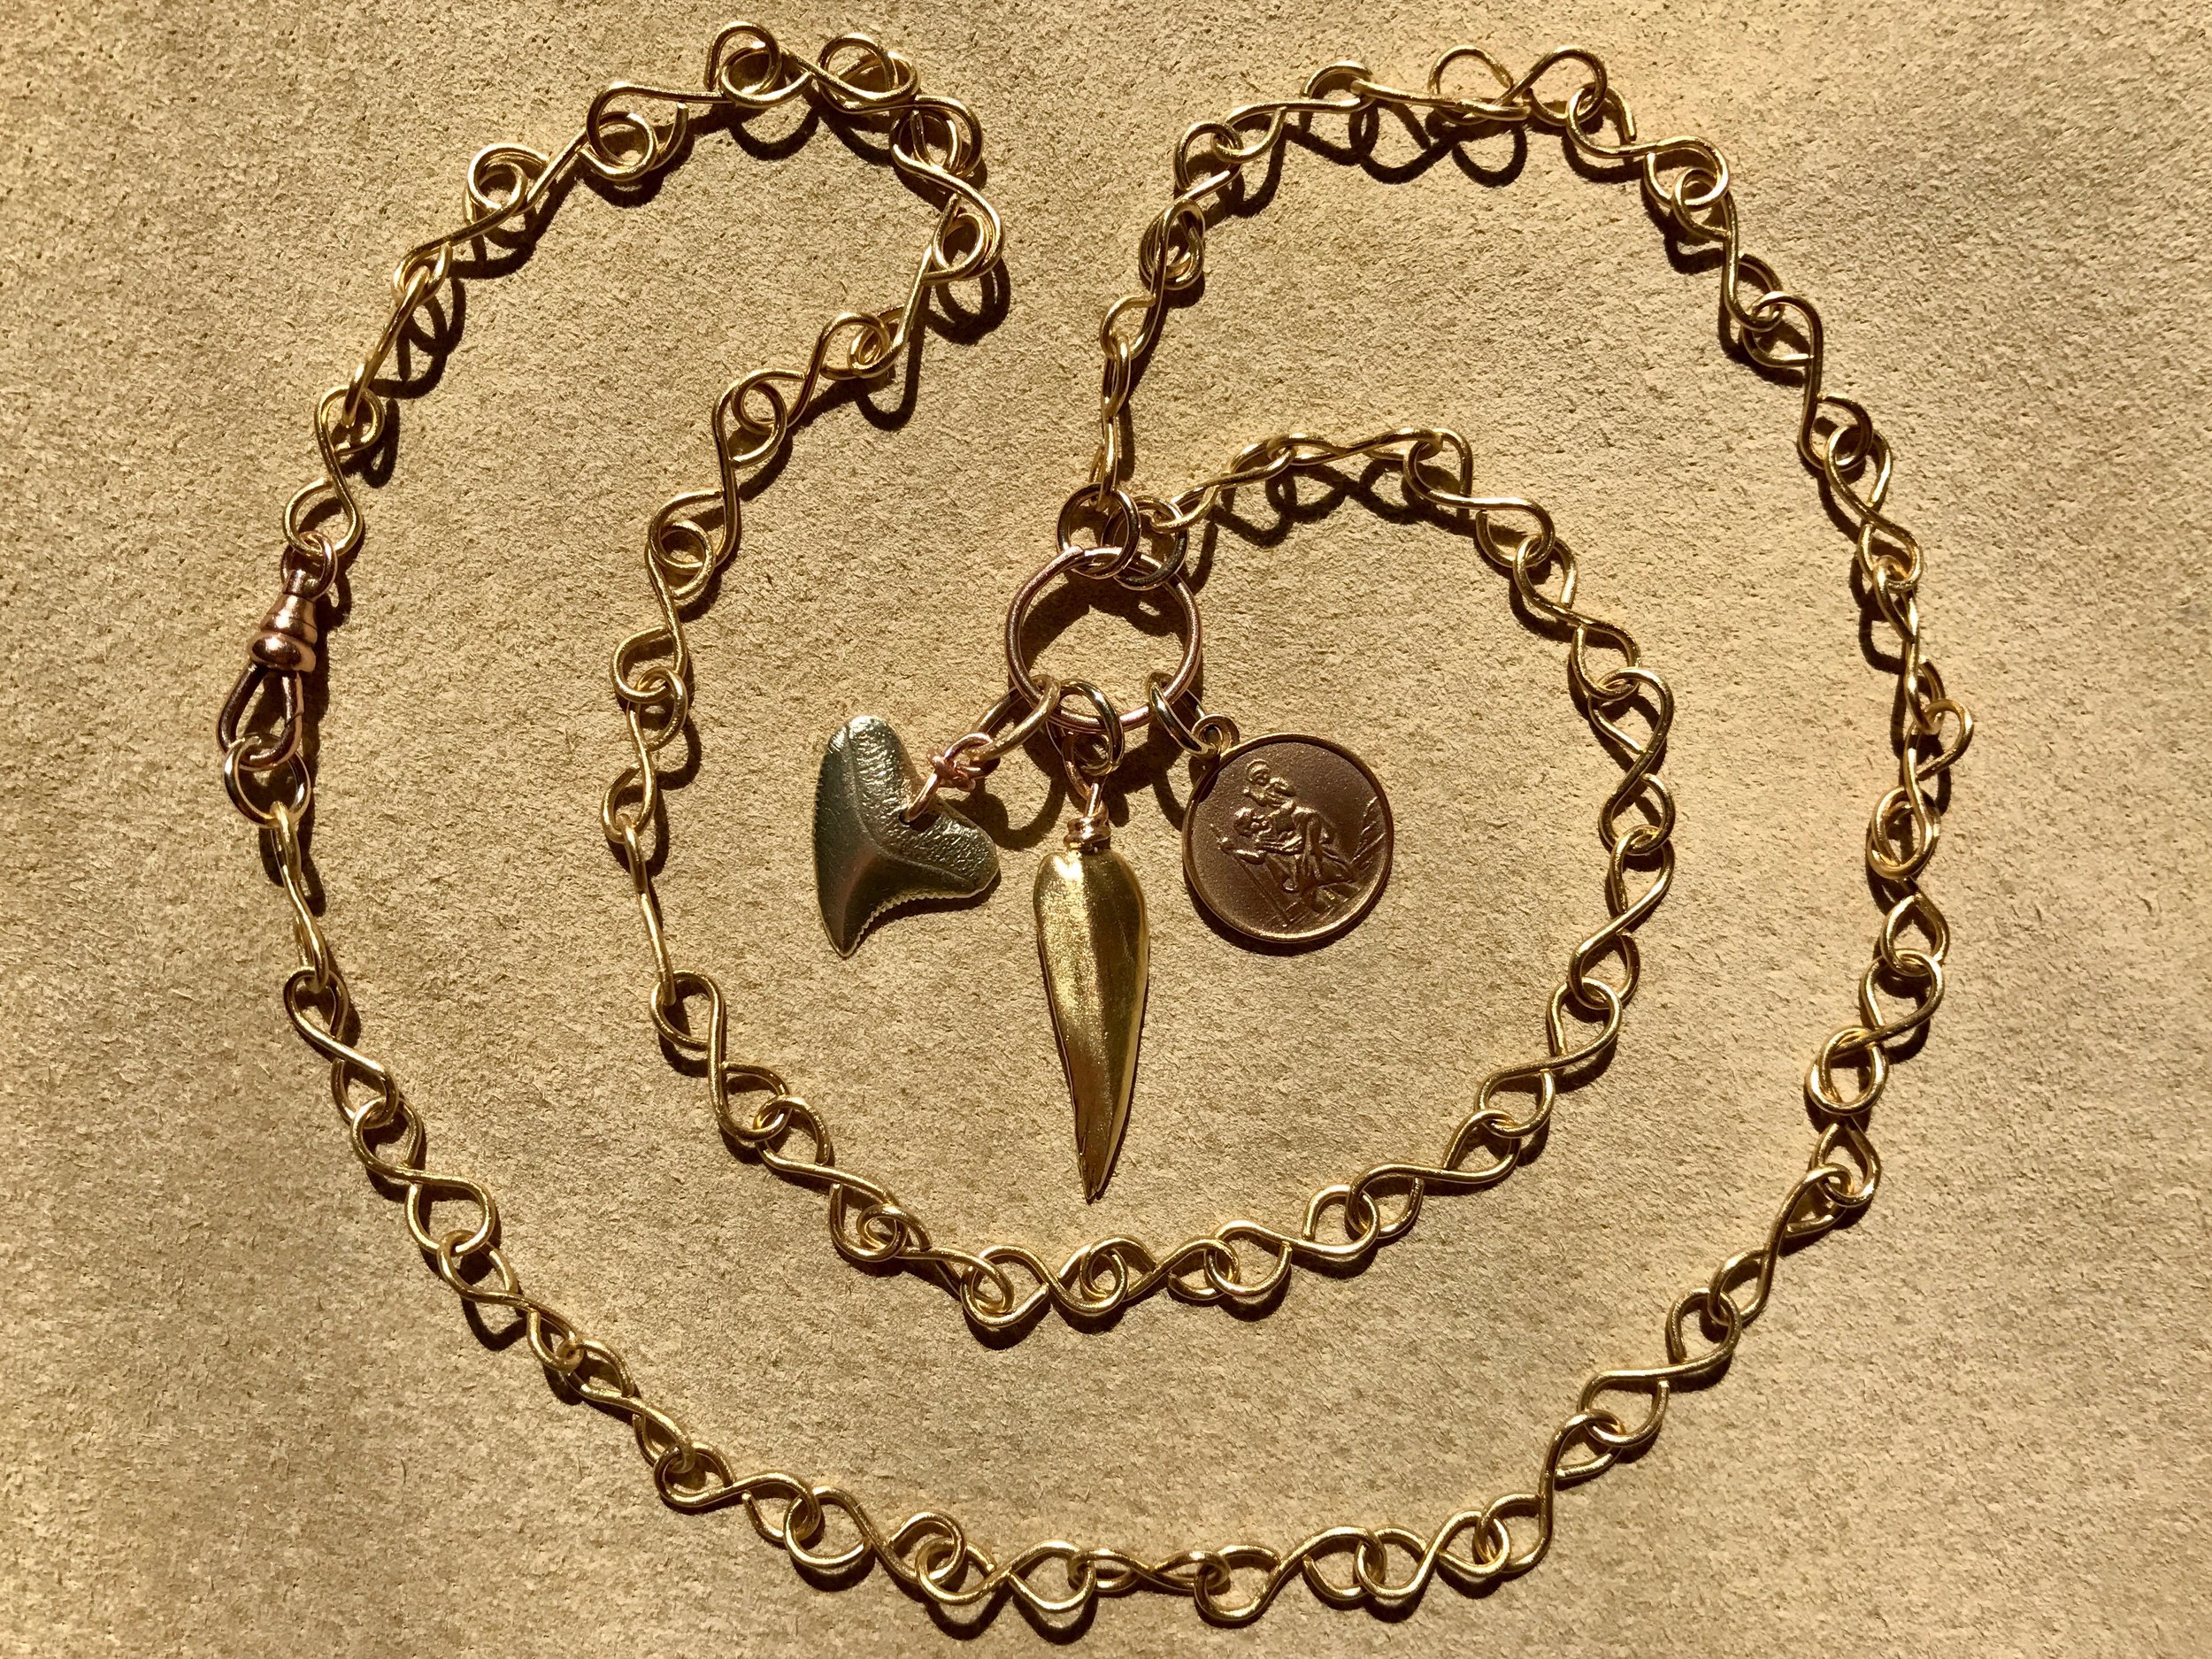 INFINITY CHAIN NECKLACE WITH SHARKS TOOTH, MISSISSIPPI CAST PENDANT AND ST. CHRISTOPHER MEDALLION